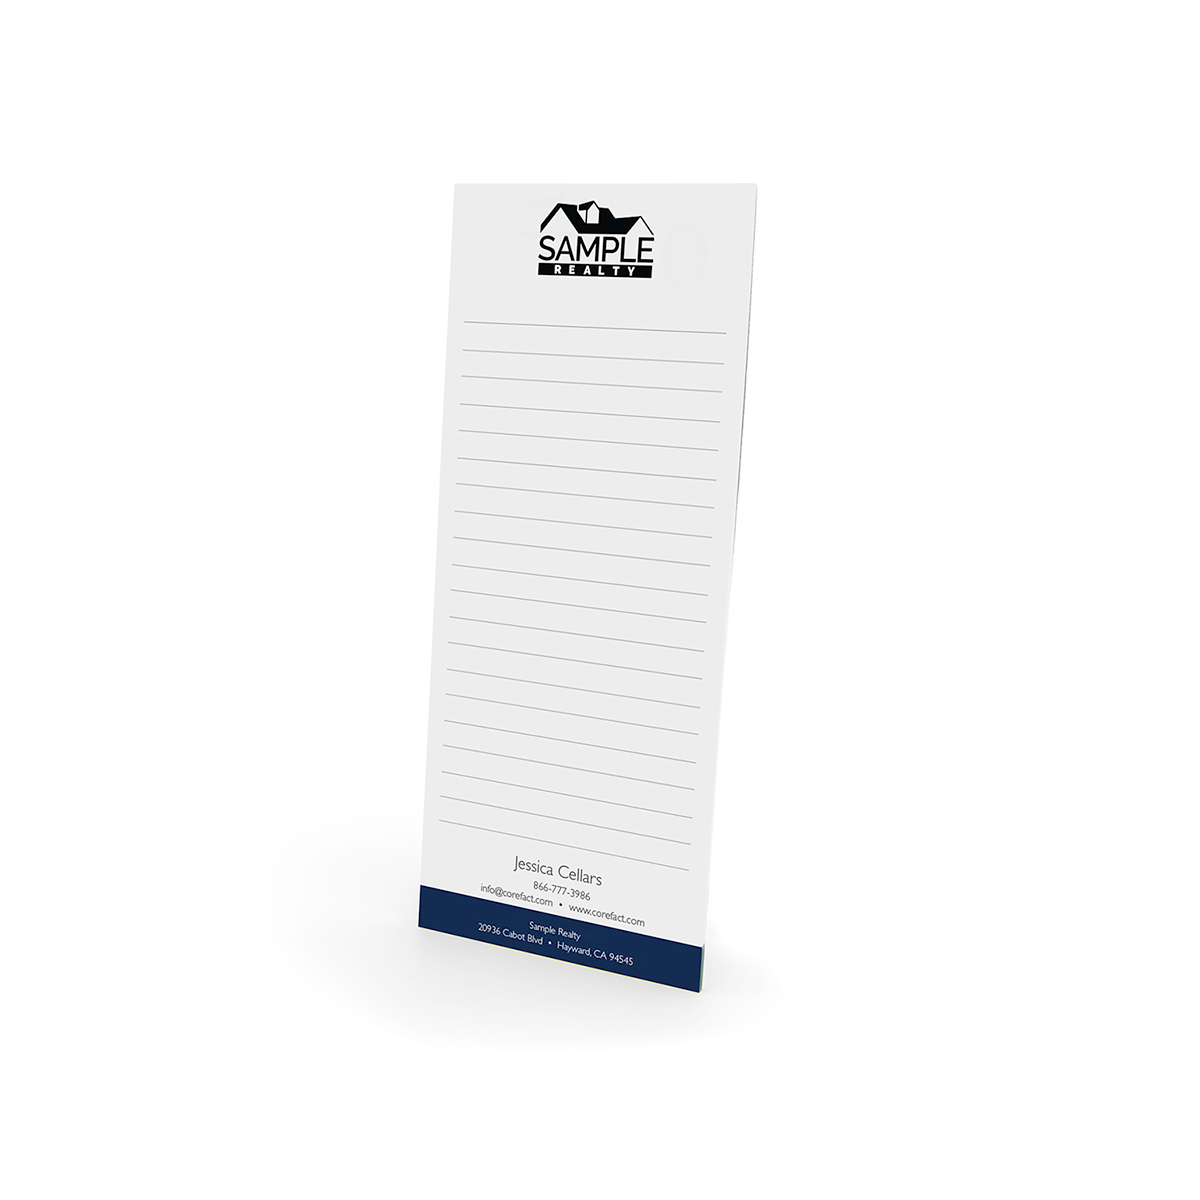 Corefact Notepad - Small 01